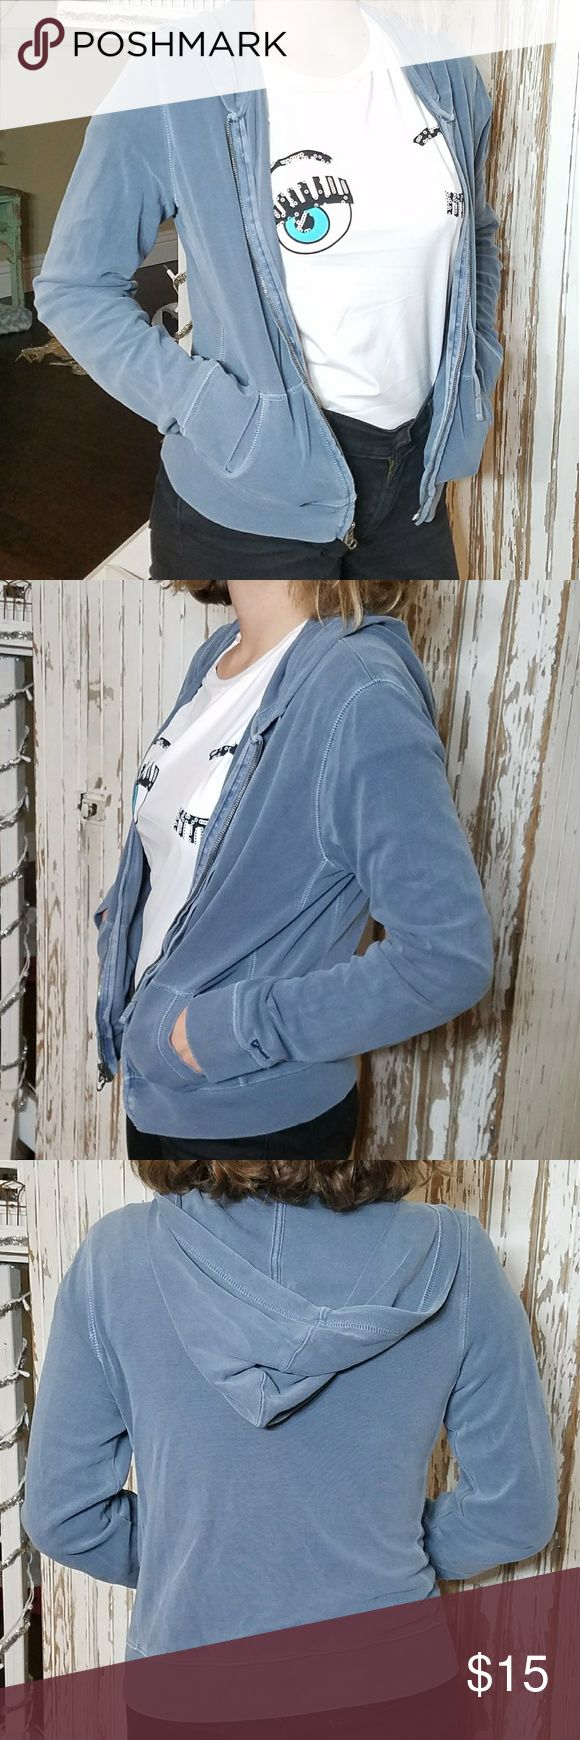 Classic Blue Abercrombie and Fitch Jacket In good condition and very soft to the touch. Abercrombie & Fitch Jackets & Coats